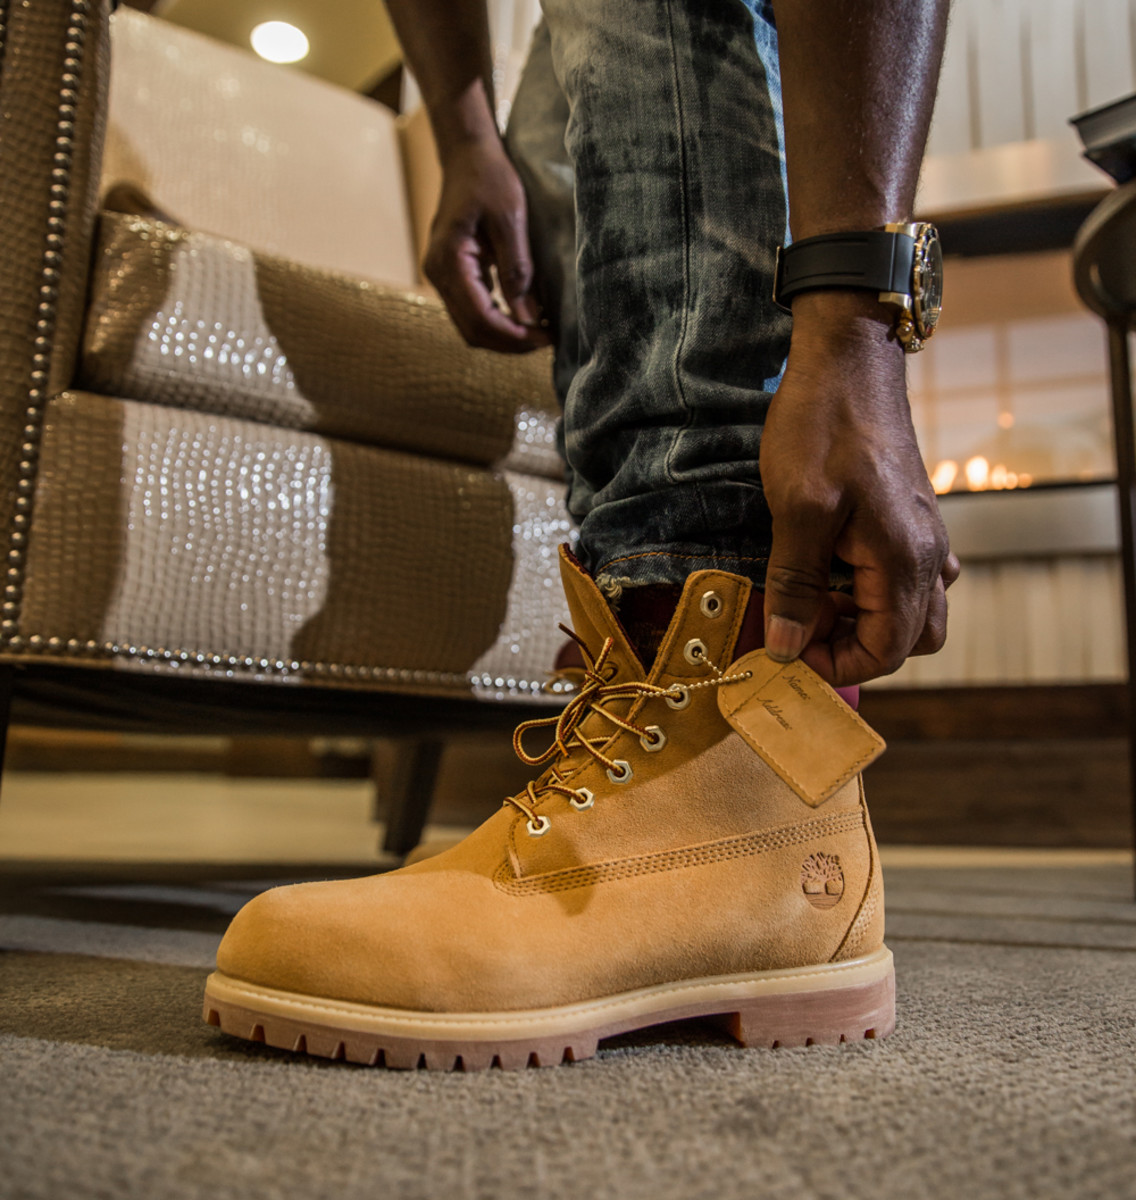 timberland-6-inch-boot-wheat-suede-dtlr-exclusive-02.jpg